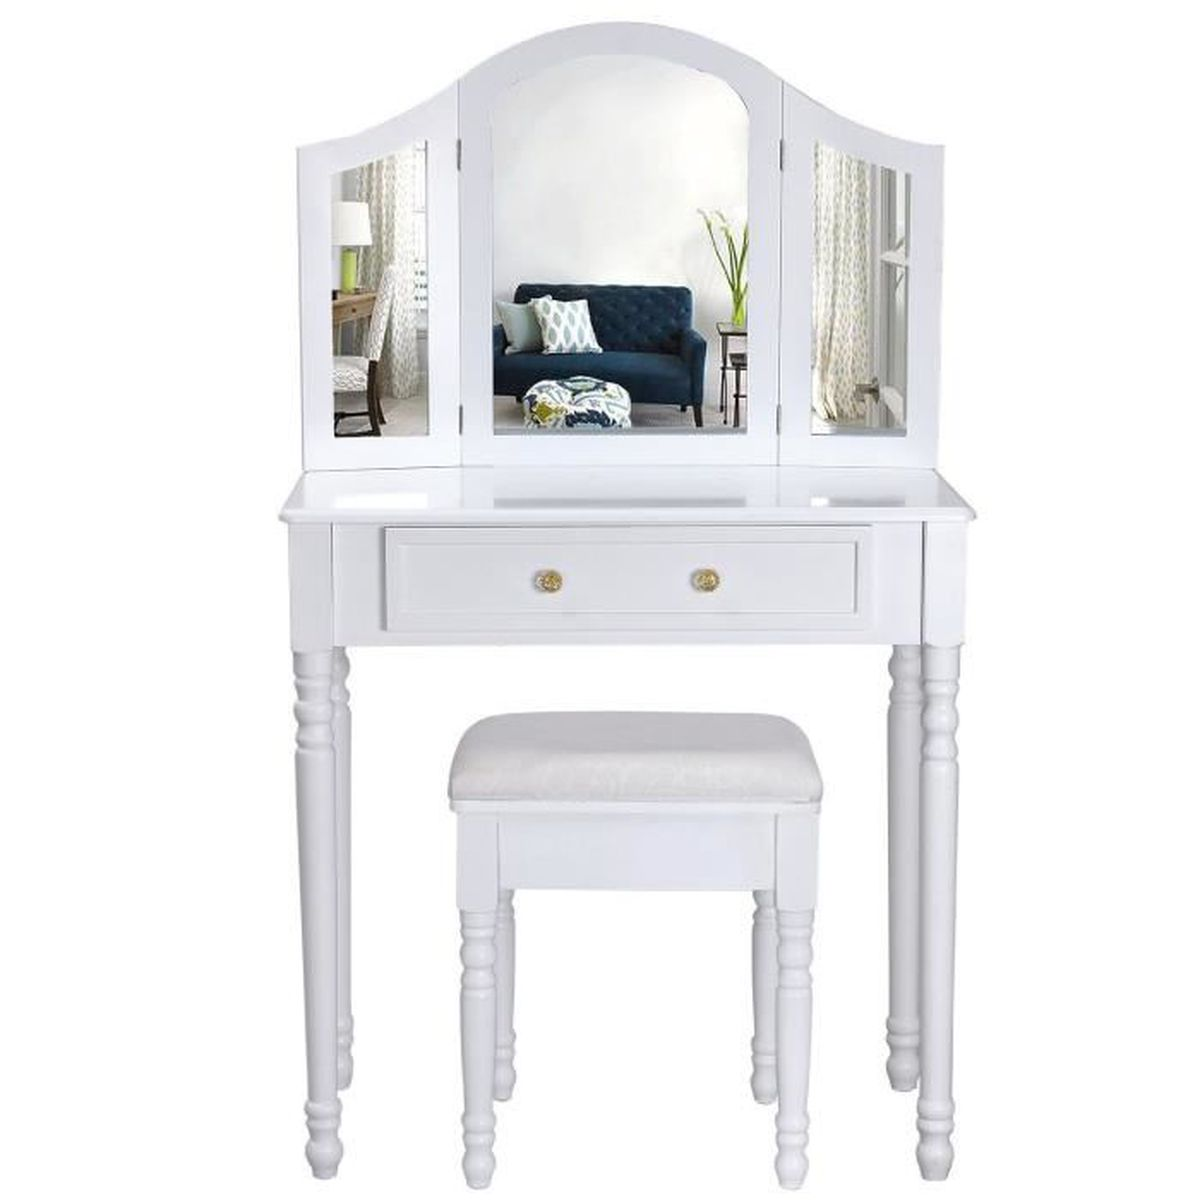 Coiffeuse meuble blanc table de maquillage commode avec 3 for Meuble coiffeuse blanc